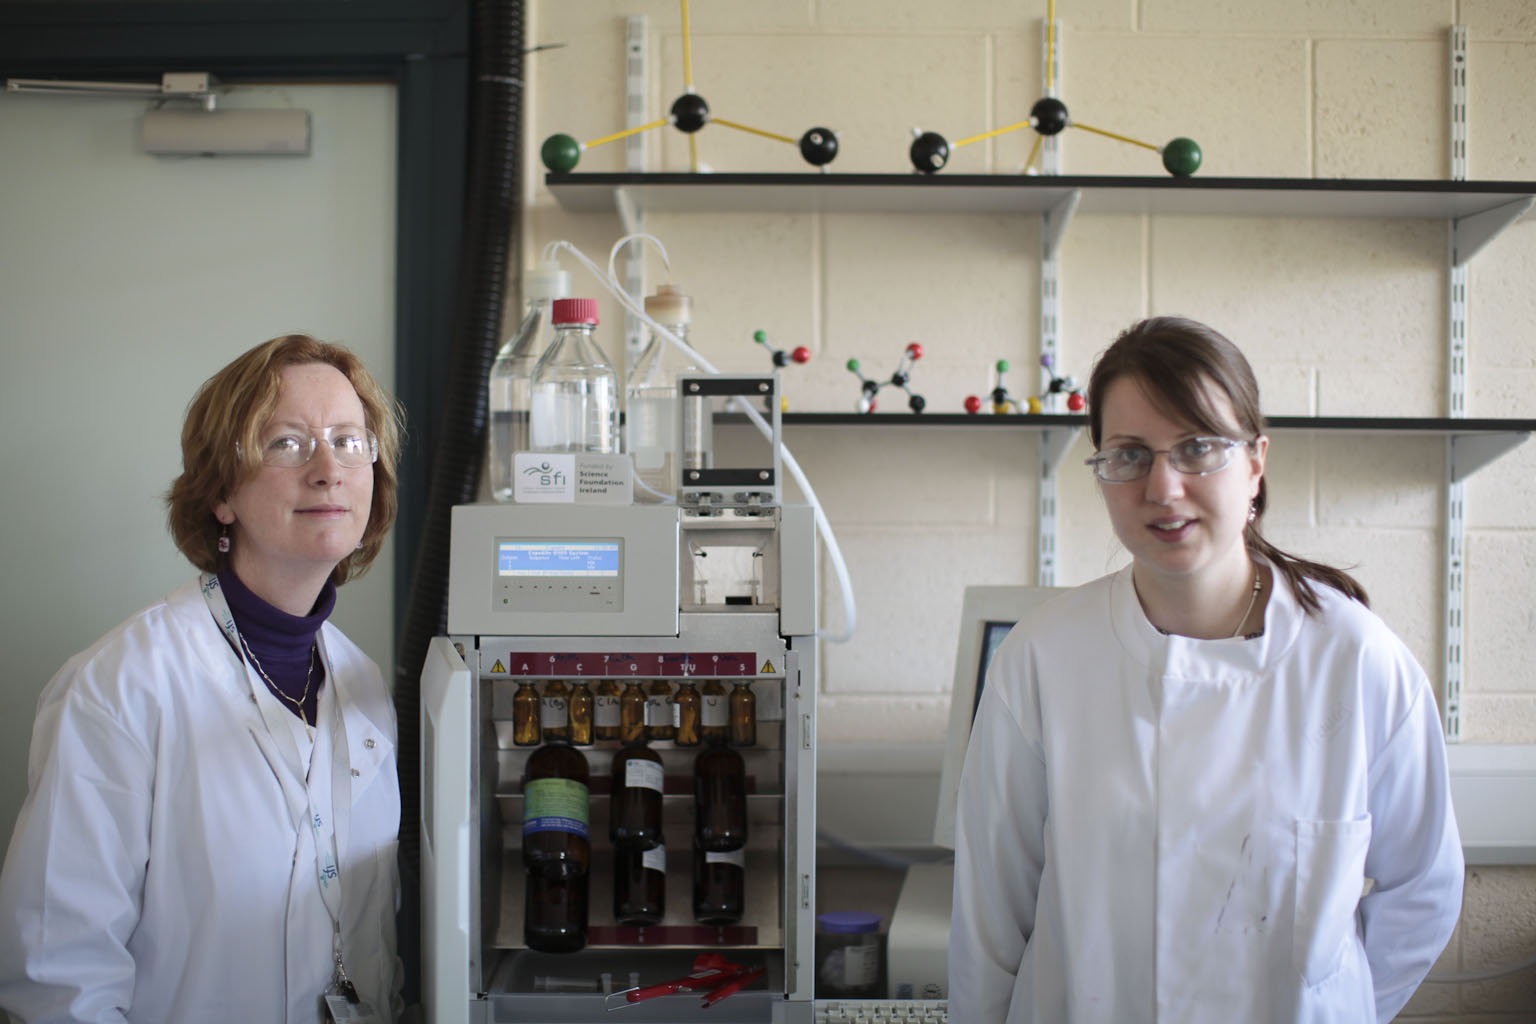 Chemistry at Maynooth University - 2 Lecturers in Lab - Maynooth University